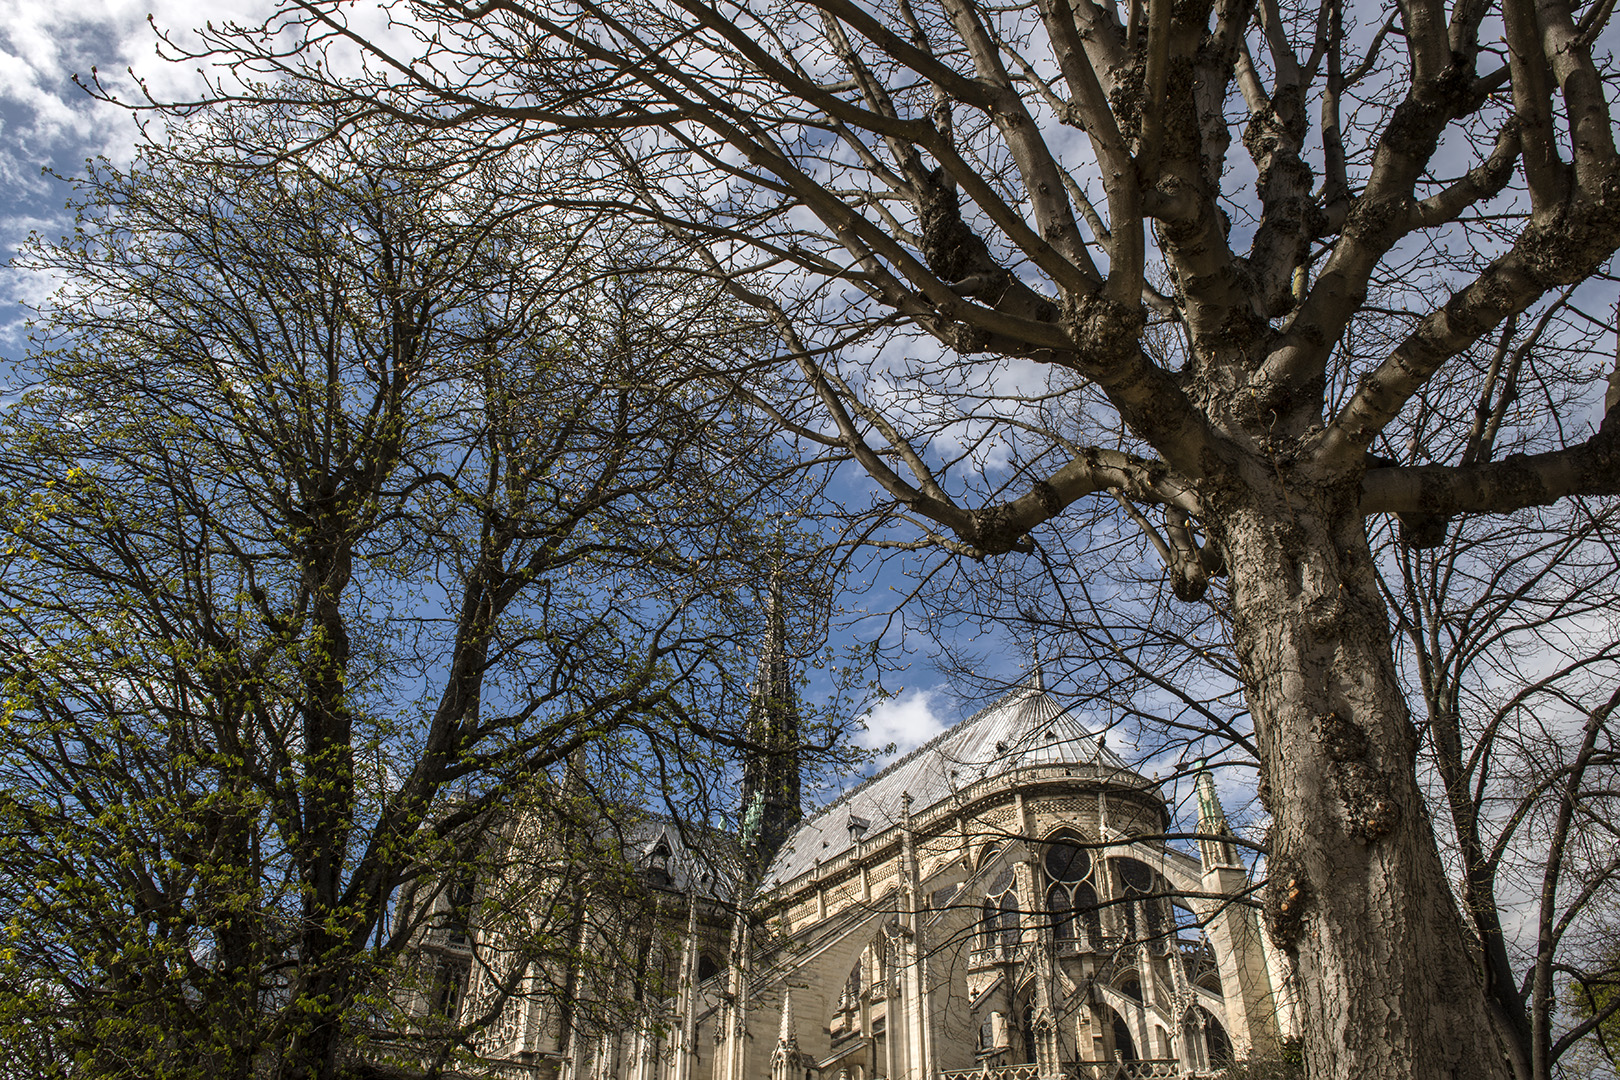 There is some analogy between the flying buttresses of the gothic cathedral and the bare branches of the trees.